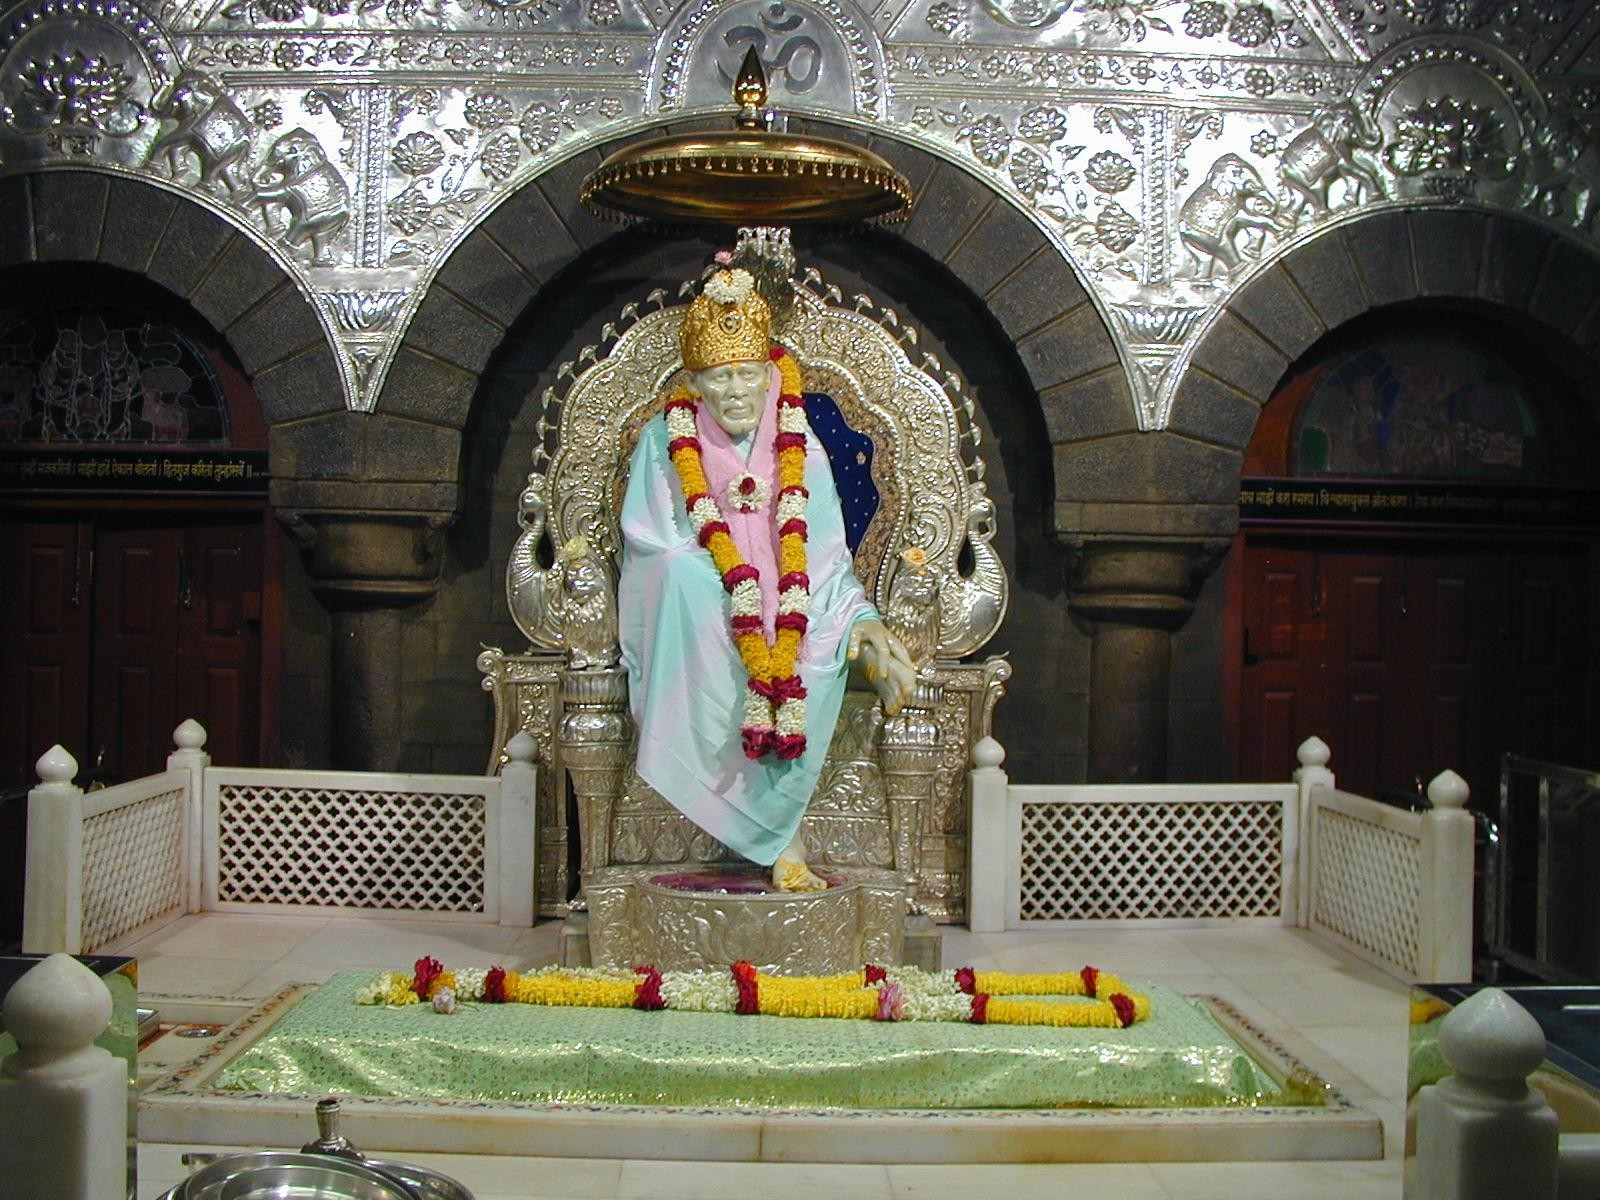 Hd wallpaper sai baba - Shirdi Sai Baba Full Hd Wallpapers